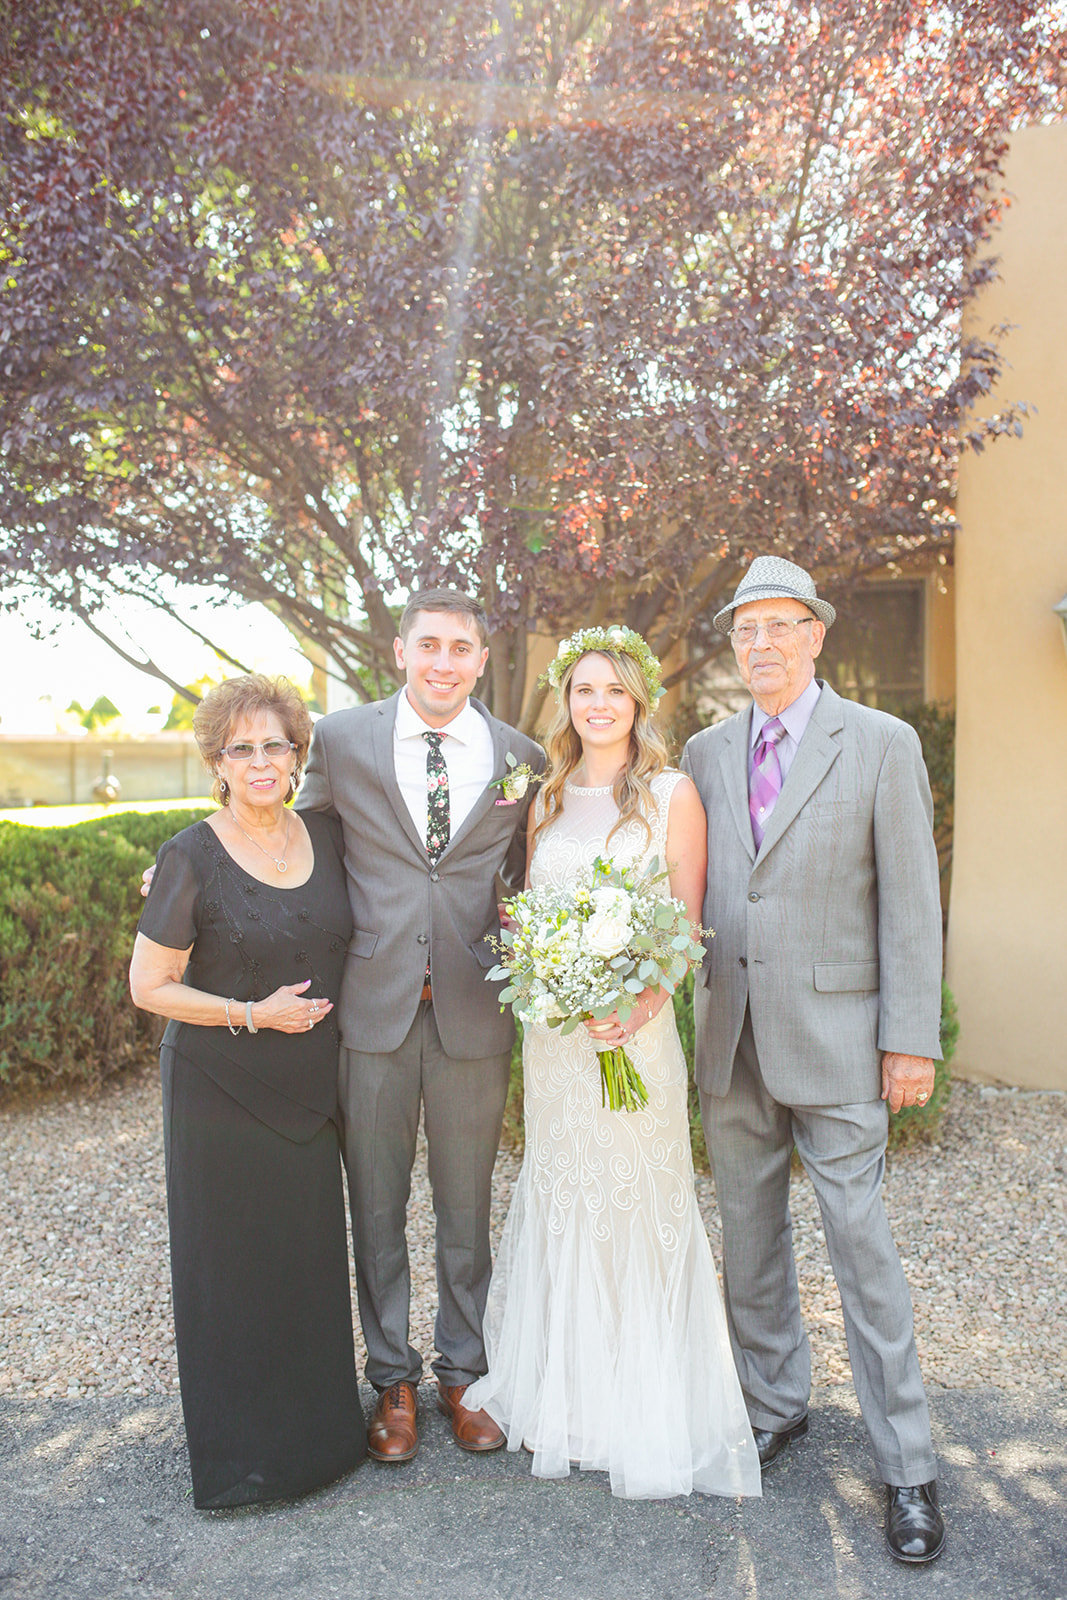 Albuquerque Wedding Photographer_Catholic Wedding_www.tylerbrooke.com_Kate Kauffman_044